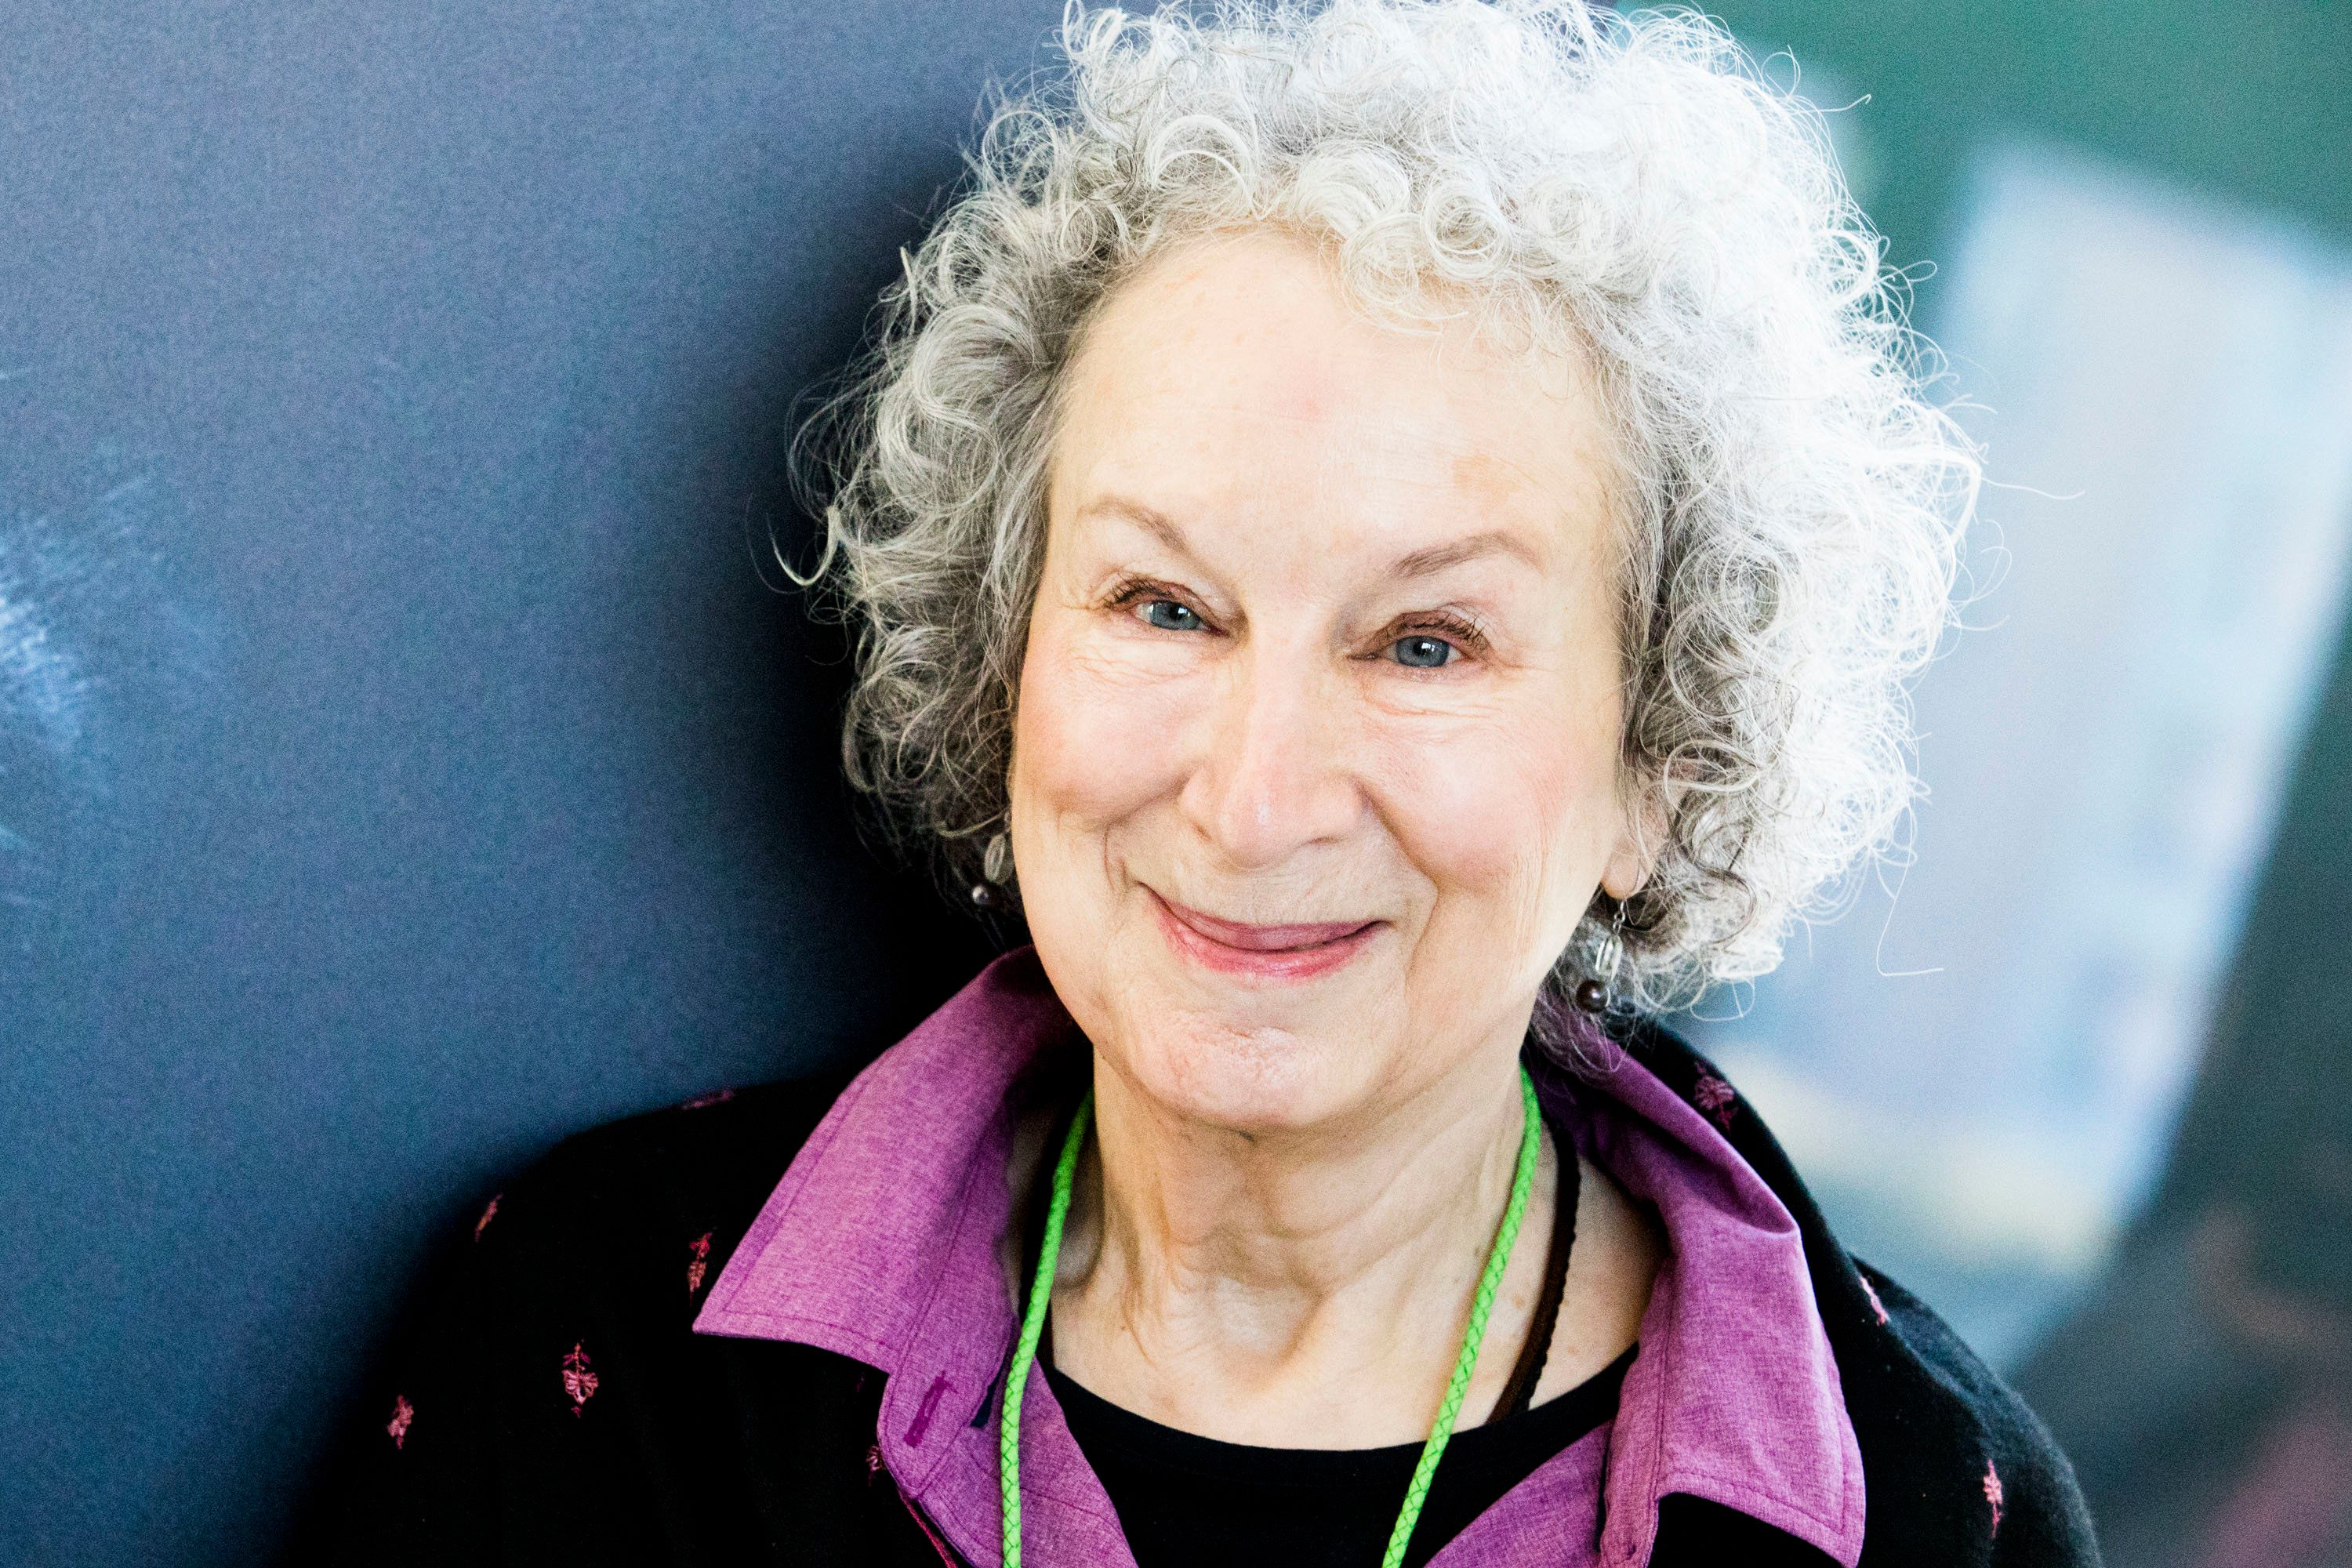 Margaret Atwood's 'The Handmaid's Tale' Is Getting A Sequel